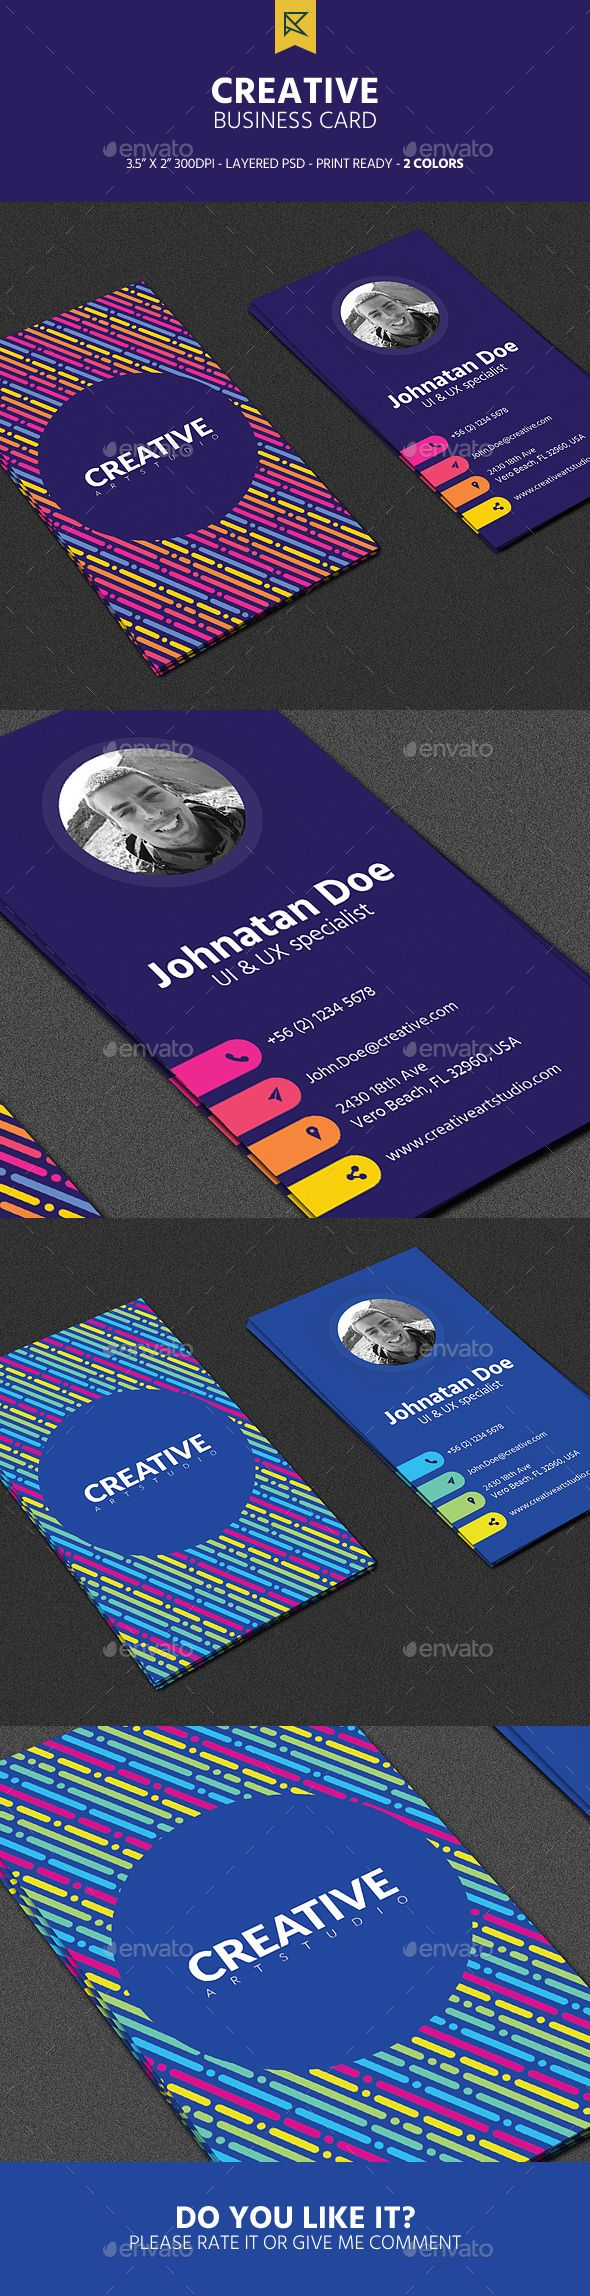 Creative Vertical Business Card - Creative Business Cards Download here : https://graphicriver.net/item/creative-vertical-business-card/19321175?s_rank=93&ref=Al-fatih